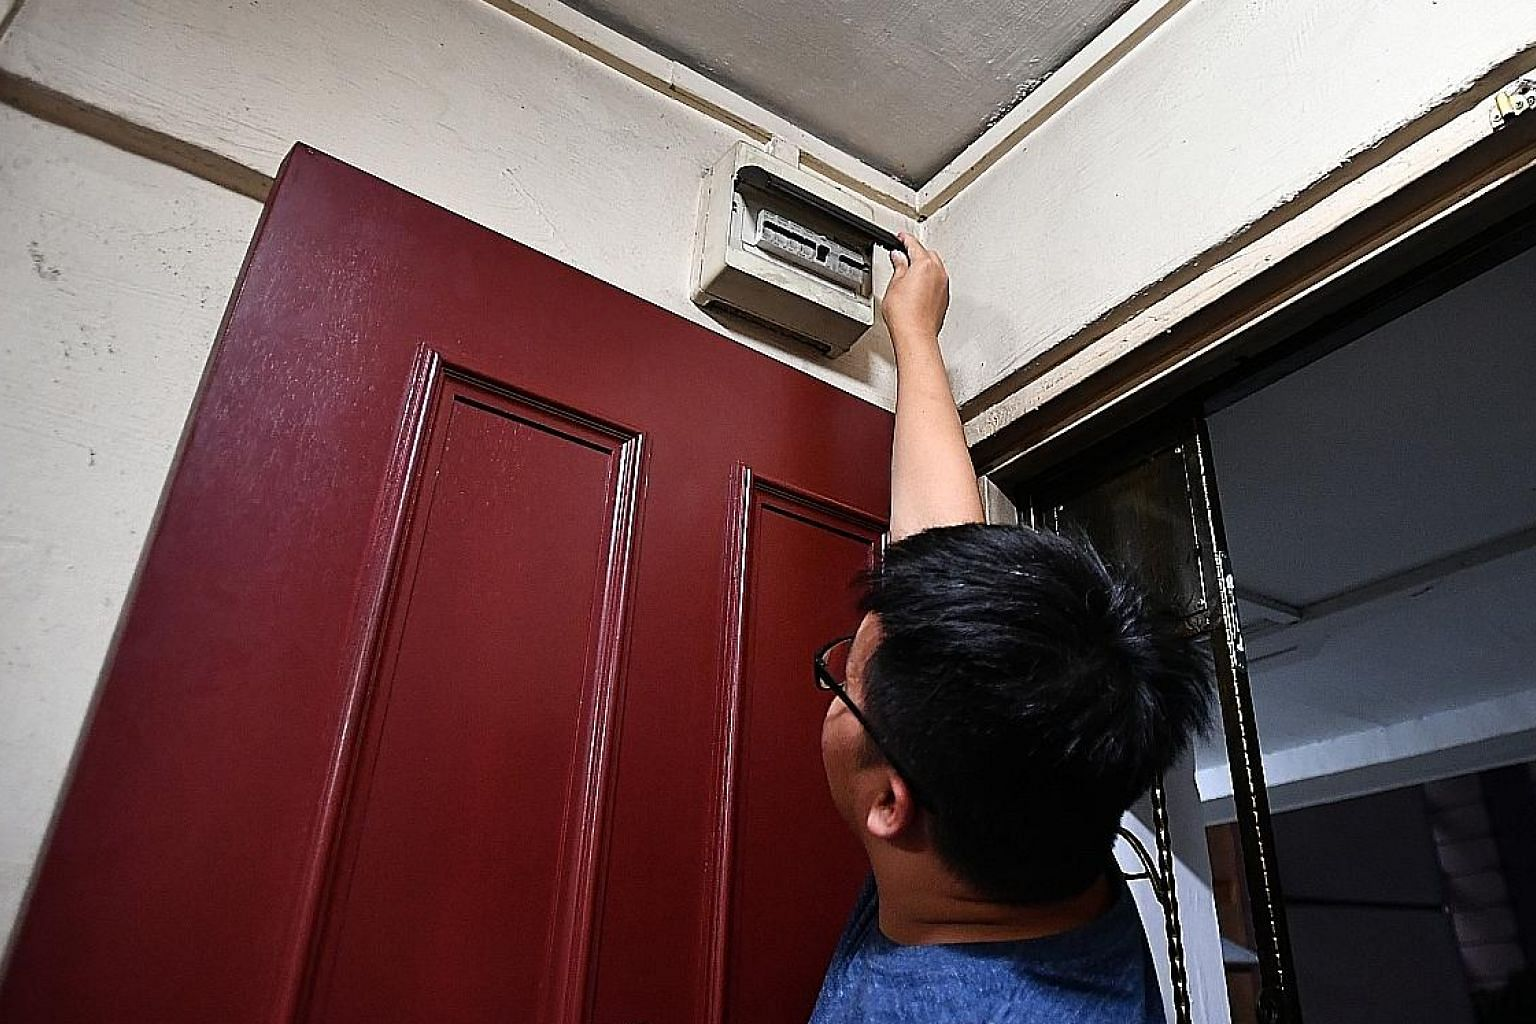 Left: Mr Tan Qi Wei, the brother of 15-year-old Tan Yao Bin who was electrocuted while showering, showing the circuit breaker inside the family's flat yesterday. Three days after his brother's death, the family rewired the whole house and replaced th